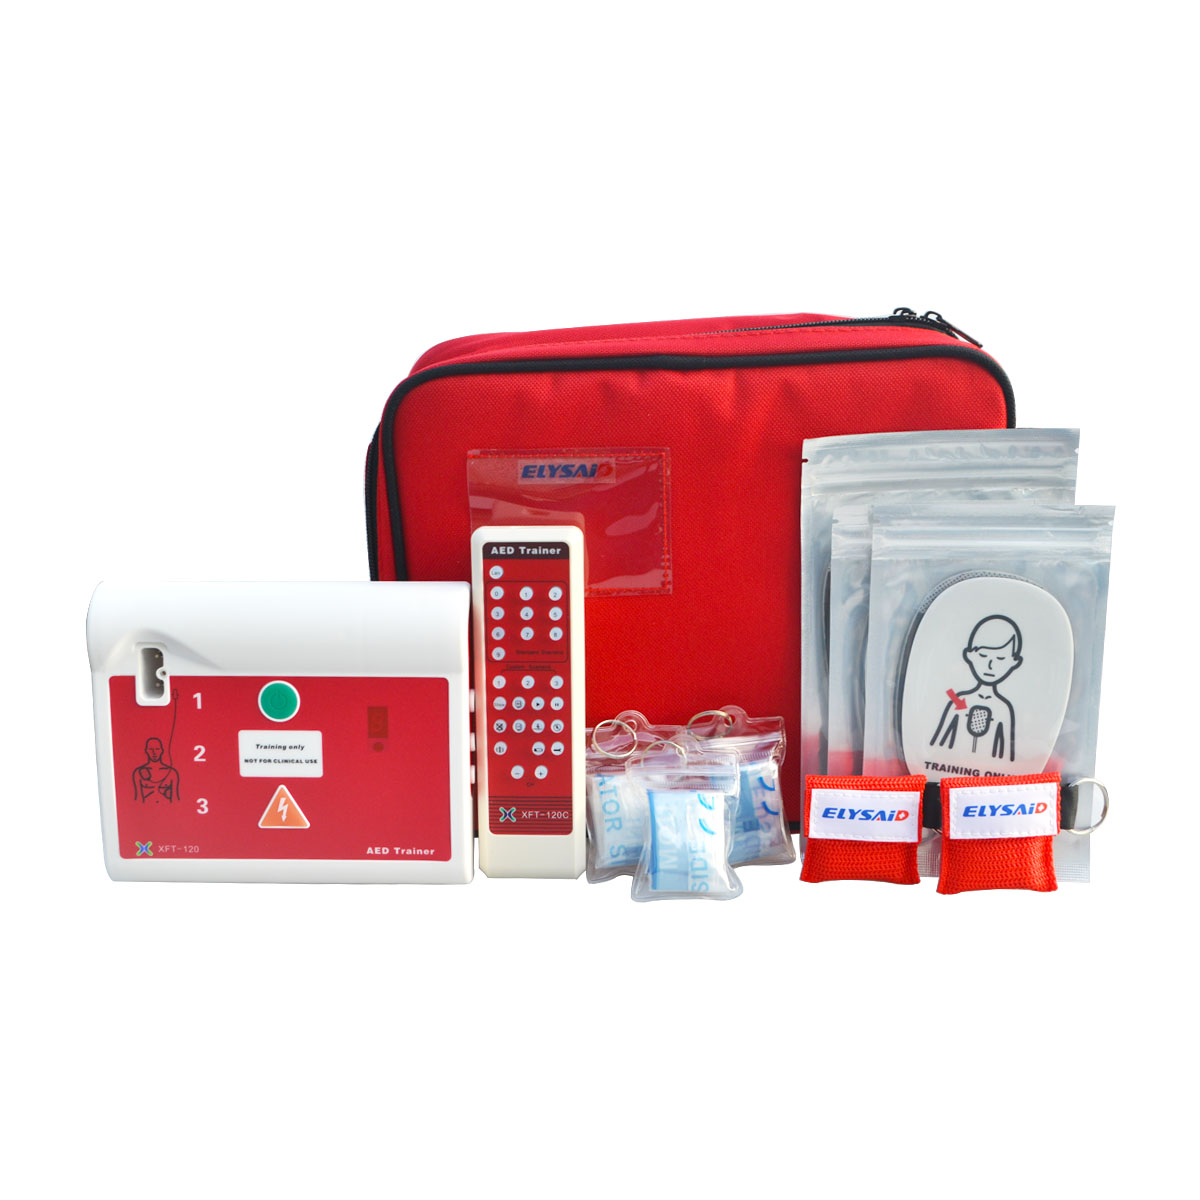 1set AED Trainer Automatic External Defibrillator Simulator Patient First Aid Machine CPR School Skill Traning English